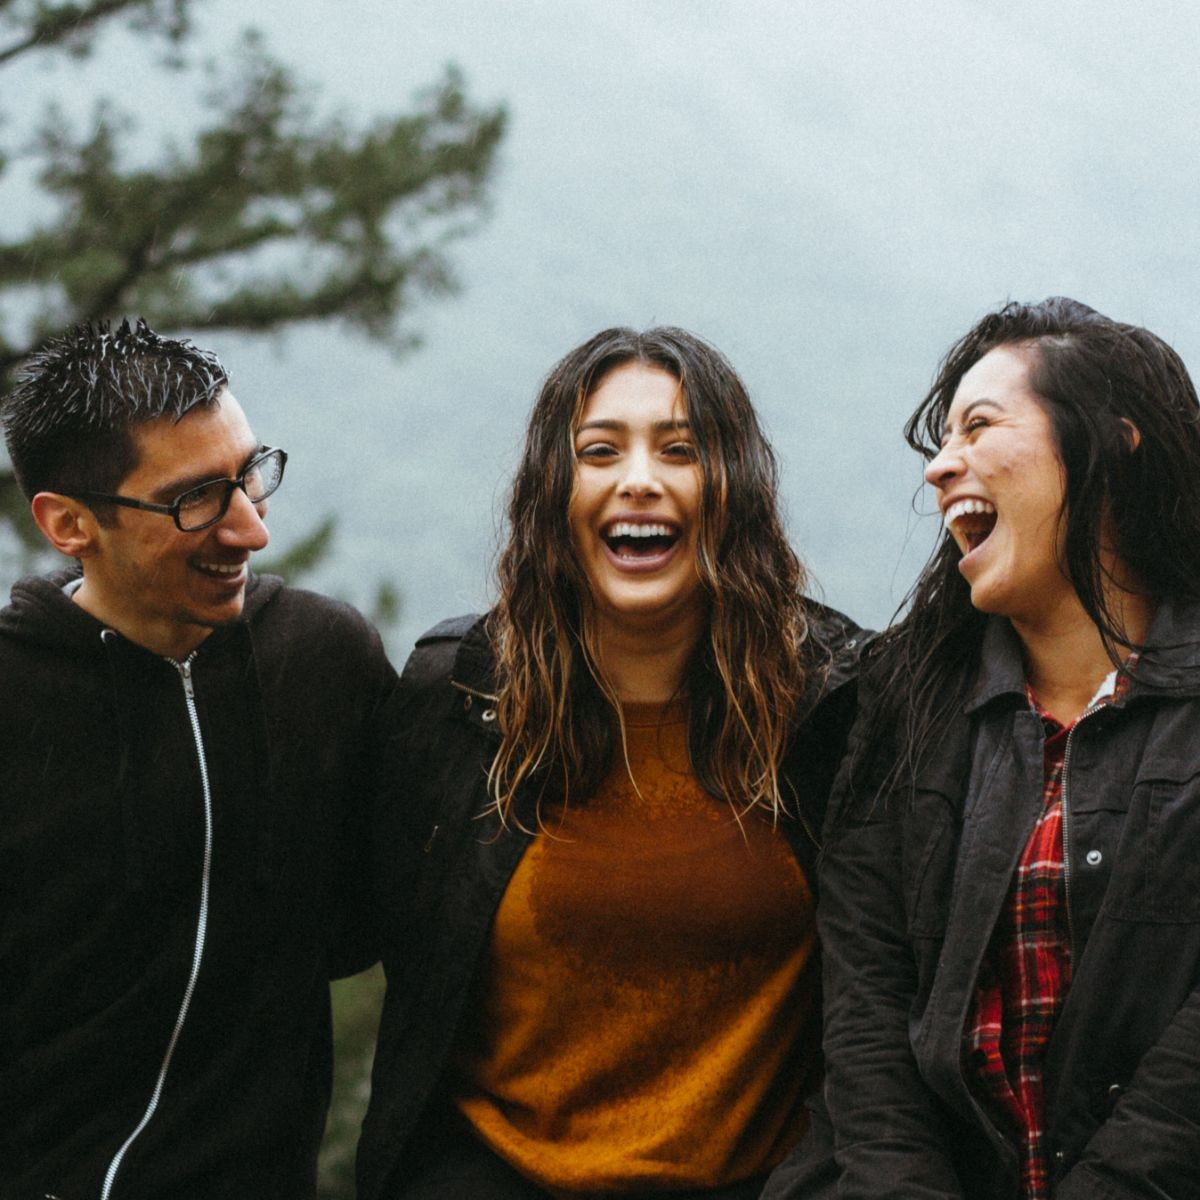 stock photo - people laughing